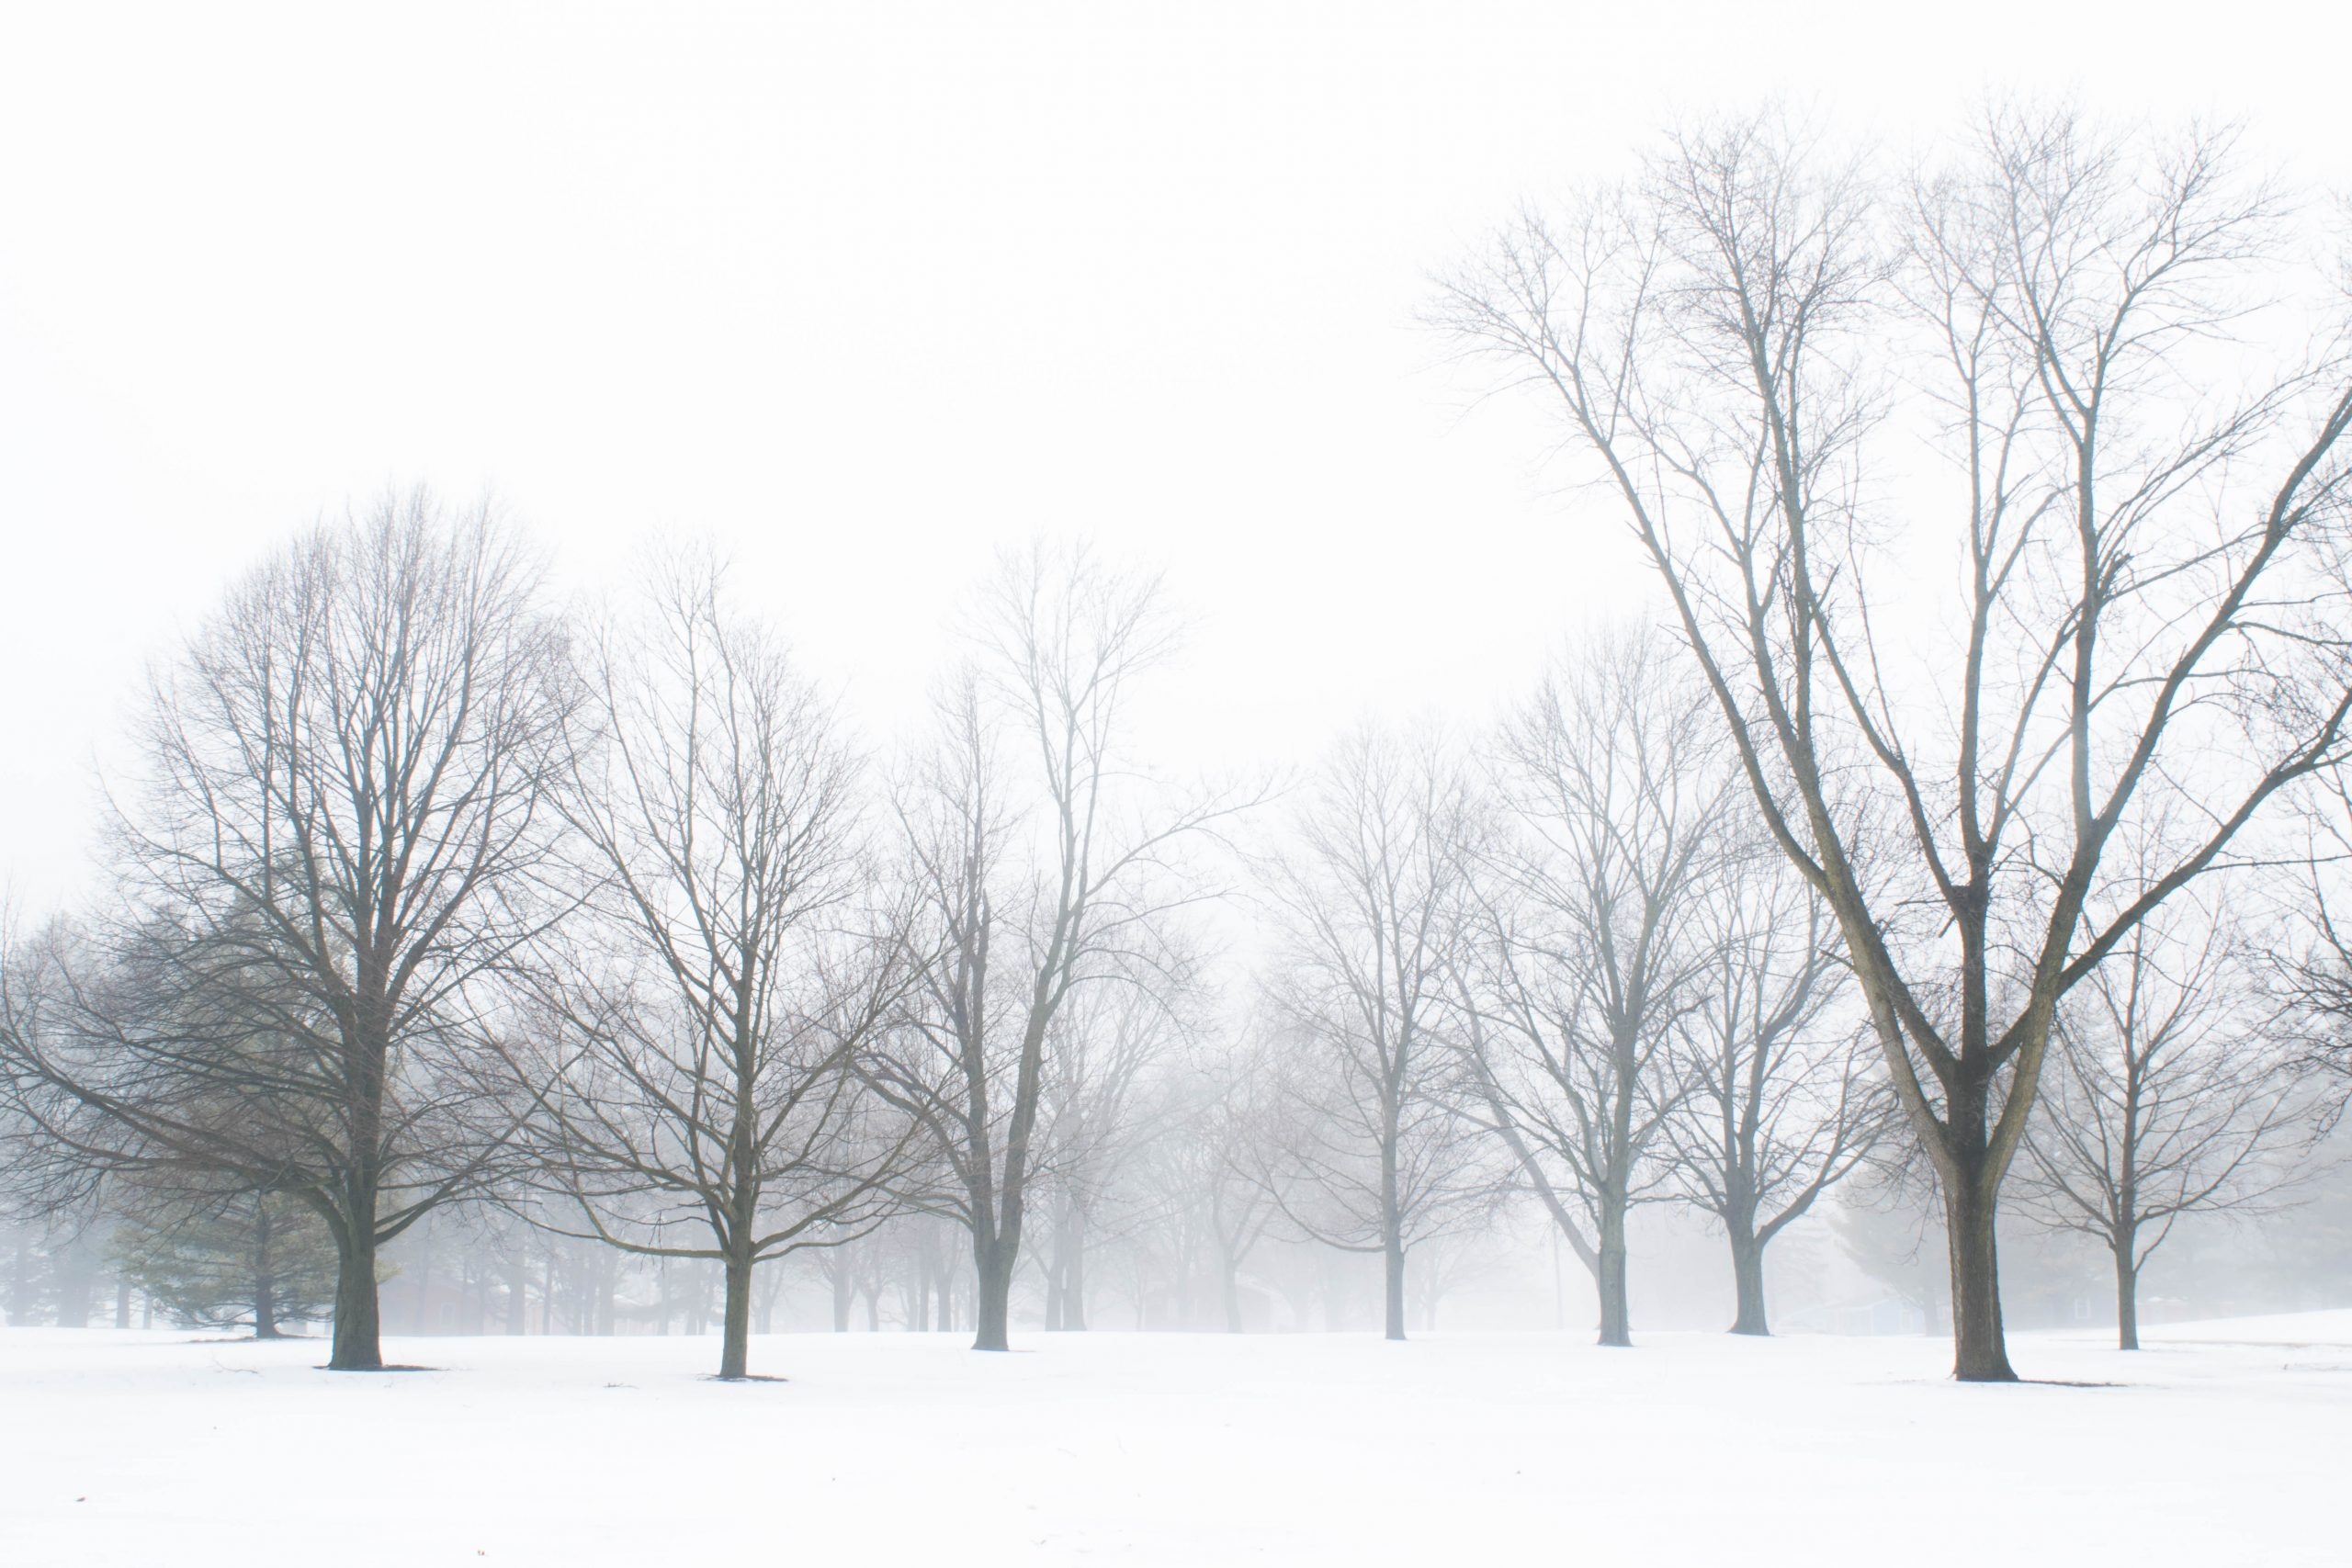 Trees become the signal against January's white background in the Fermilab Village. nature, landscape, winter, snow, sky, tree, plant Photo: Maria Emilia Ruiz